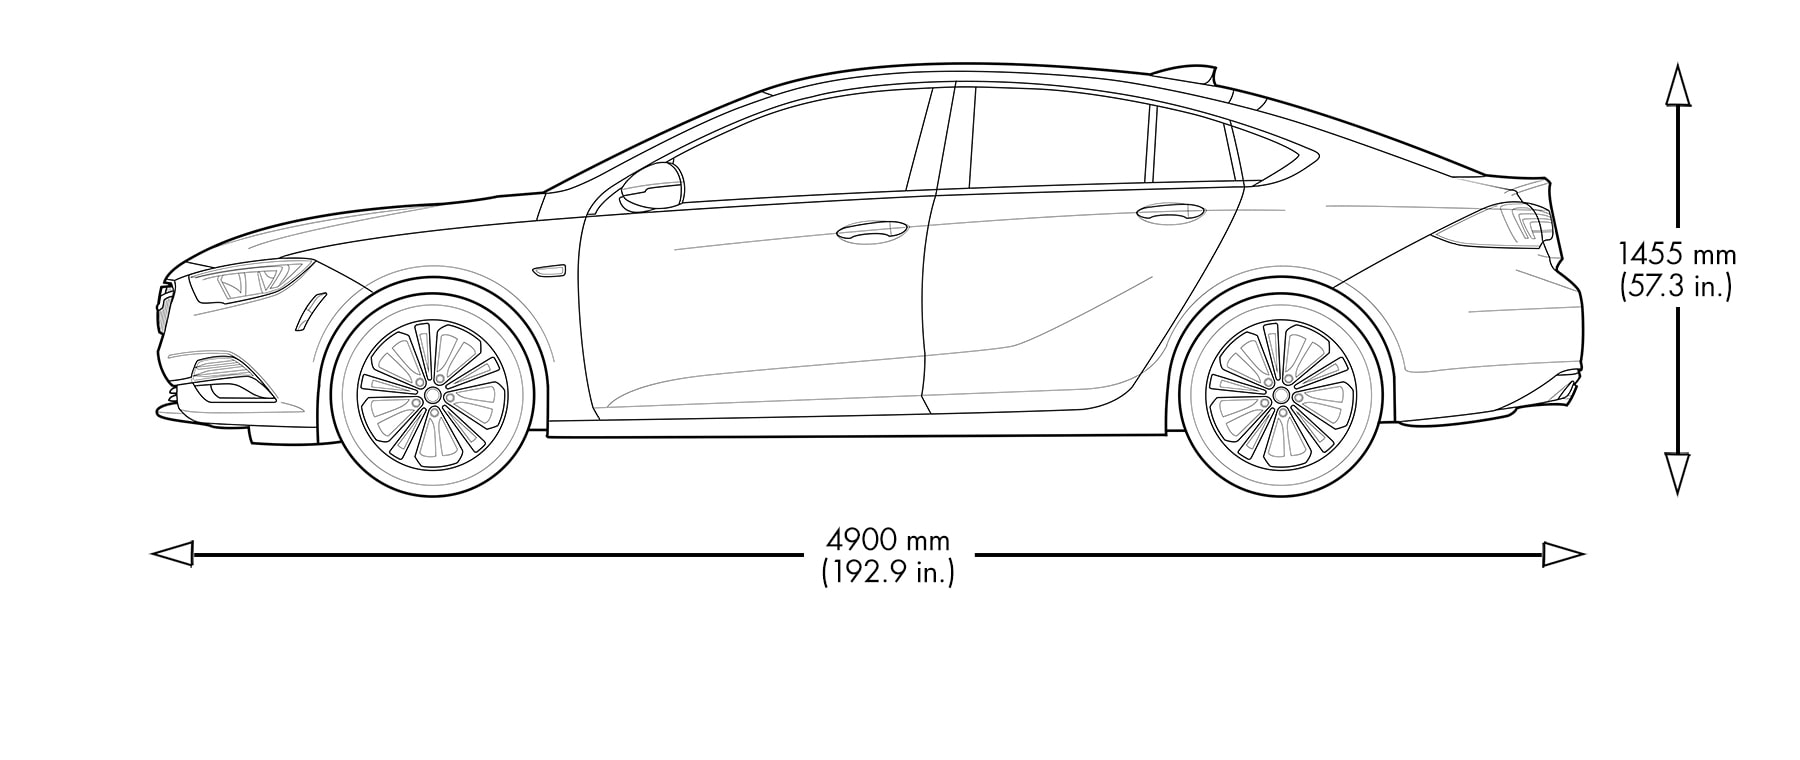 Spec diagram of 2020 Buick Regal Sportback mid-size sedan.